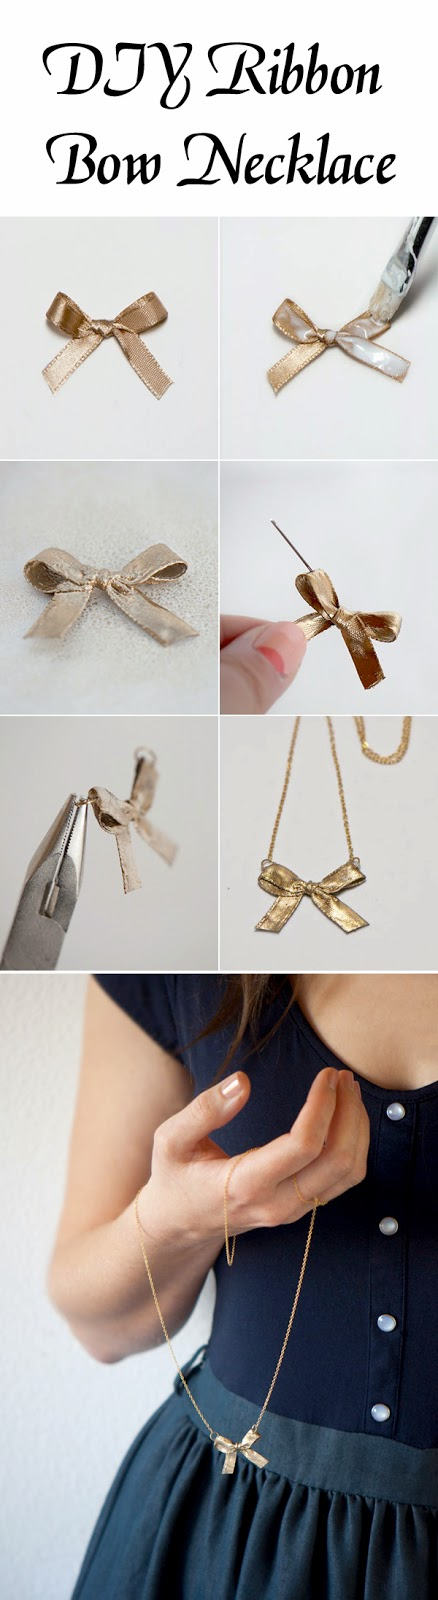 DIY Ribbon Bow Necklace